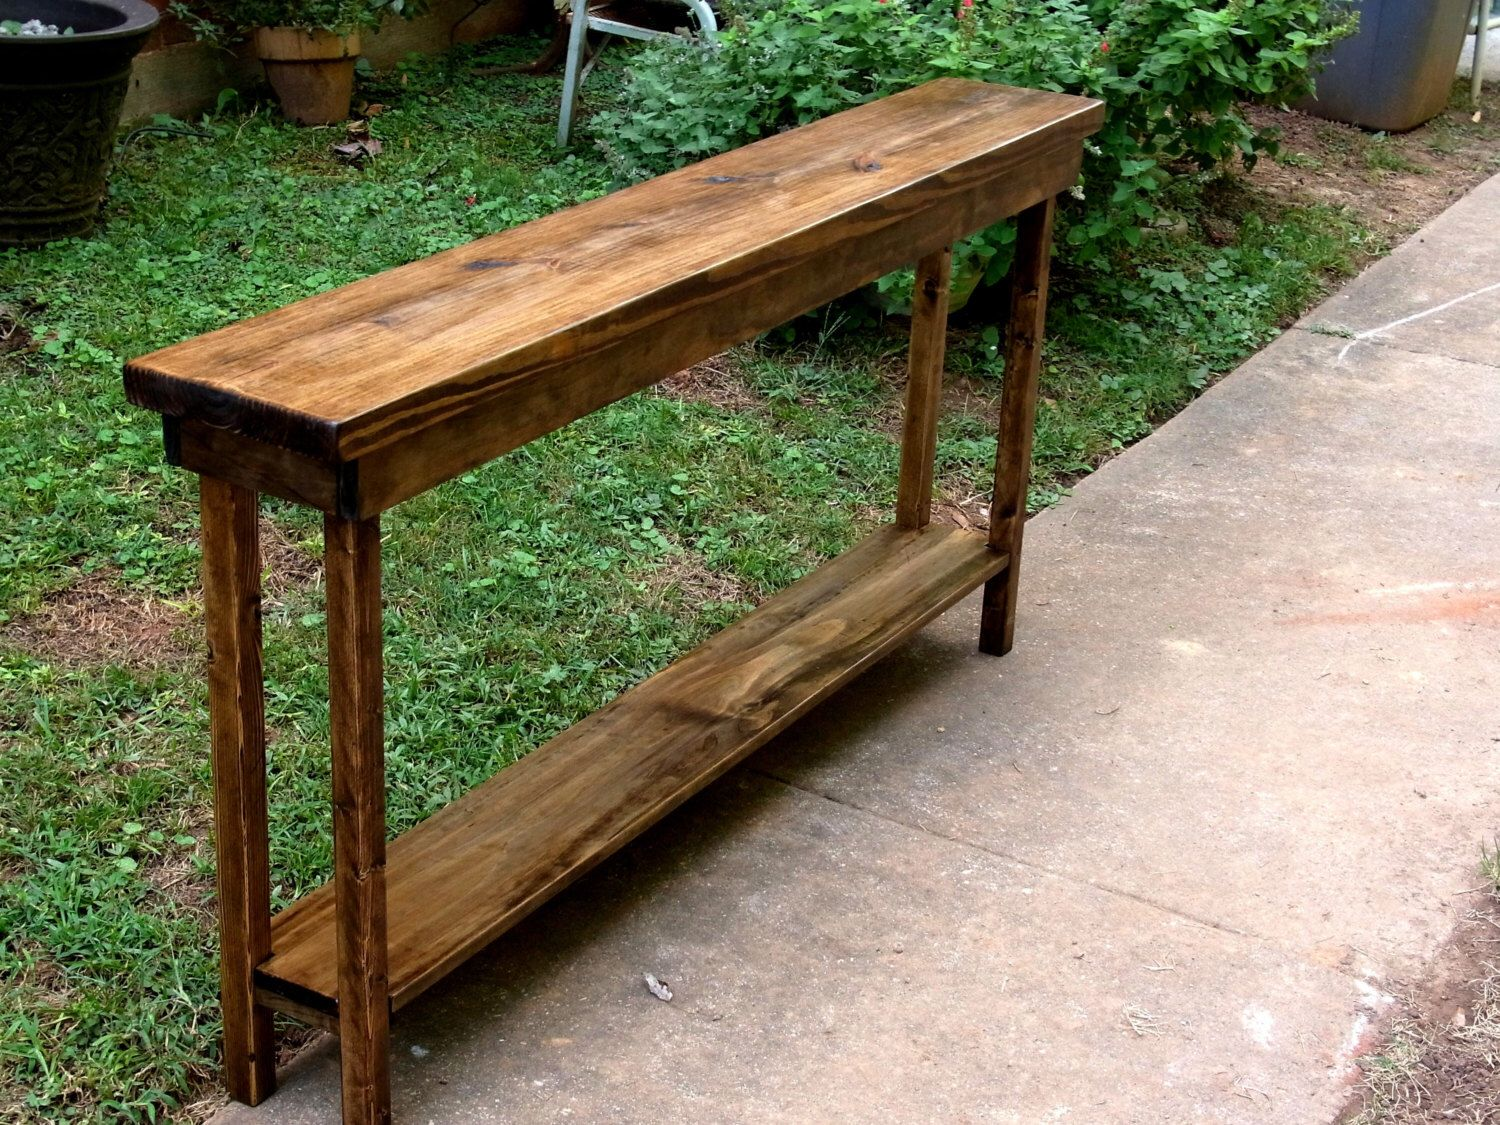 How to make a sofa table out of floor boards - Rustic Console Table Extra Narrow Sofa Table Entryway Hallway Foyer Table With Shelf 60 Inch By